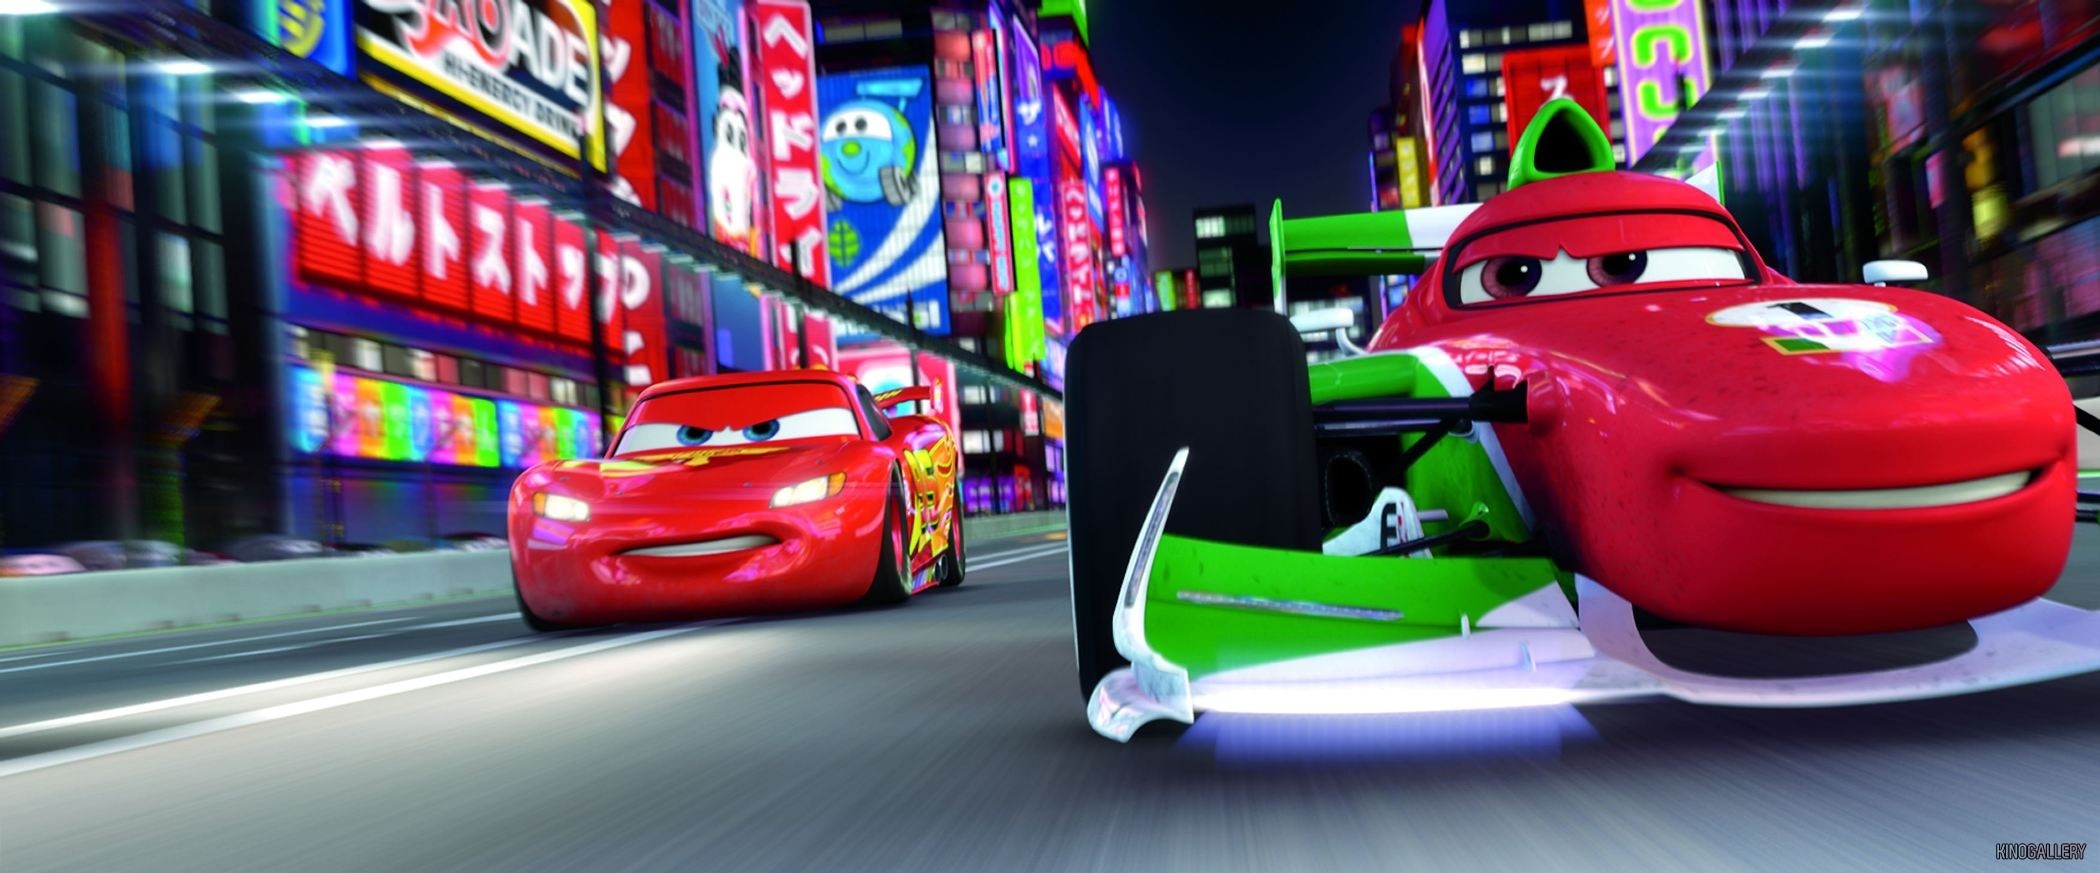 Disney Pixar Cars 2 Images Cars 2 Pics Hd Wallpaper And